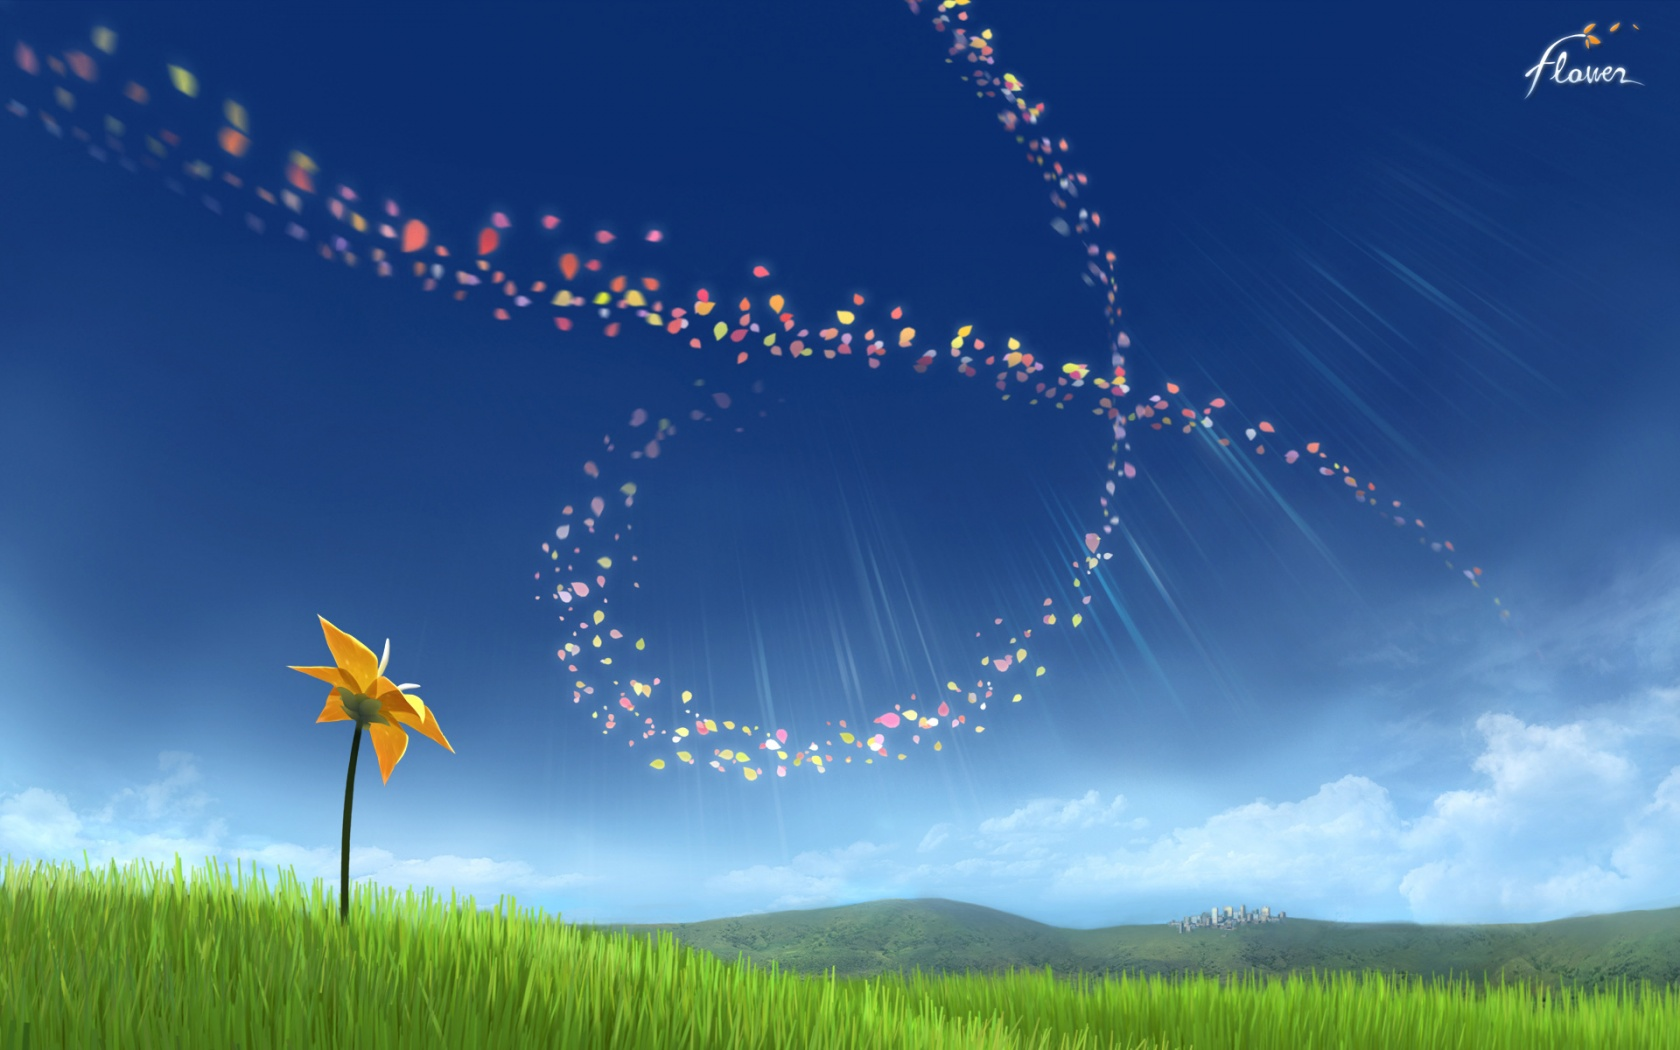 Flower Game Wallpapers in jpg format for free download